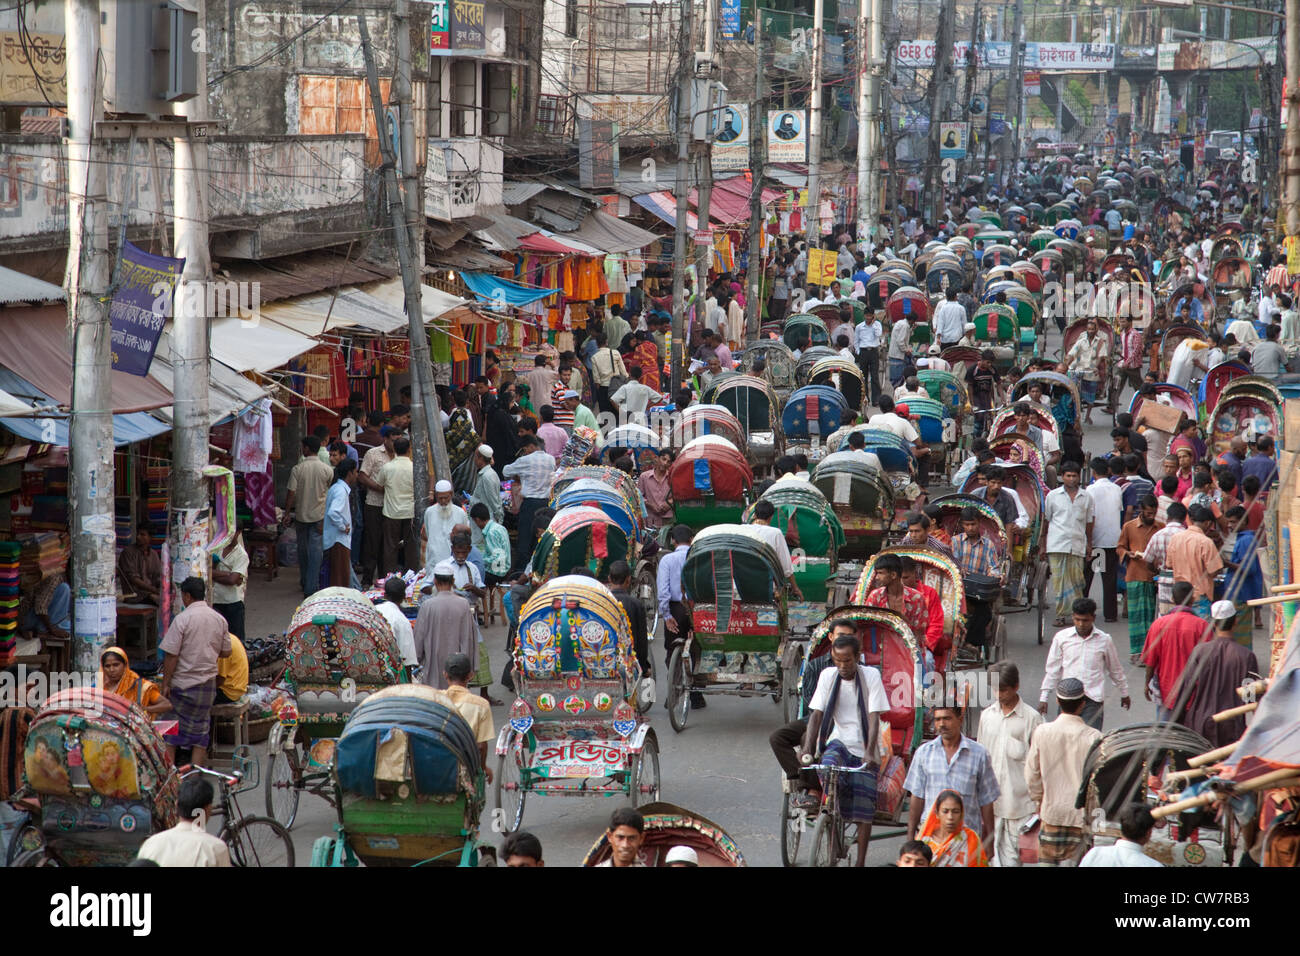 A street crowded with rickshaws and people in Old Dhaka, Bangladesh - Stock Image